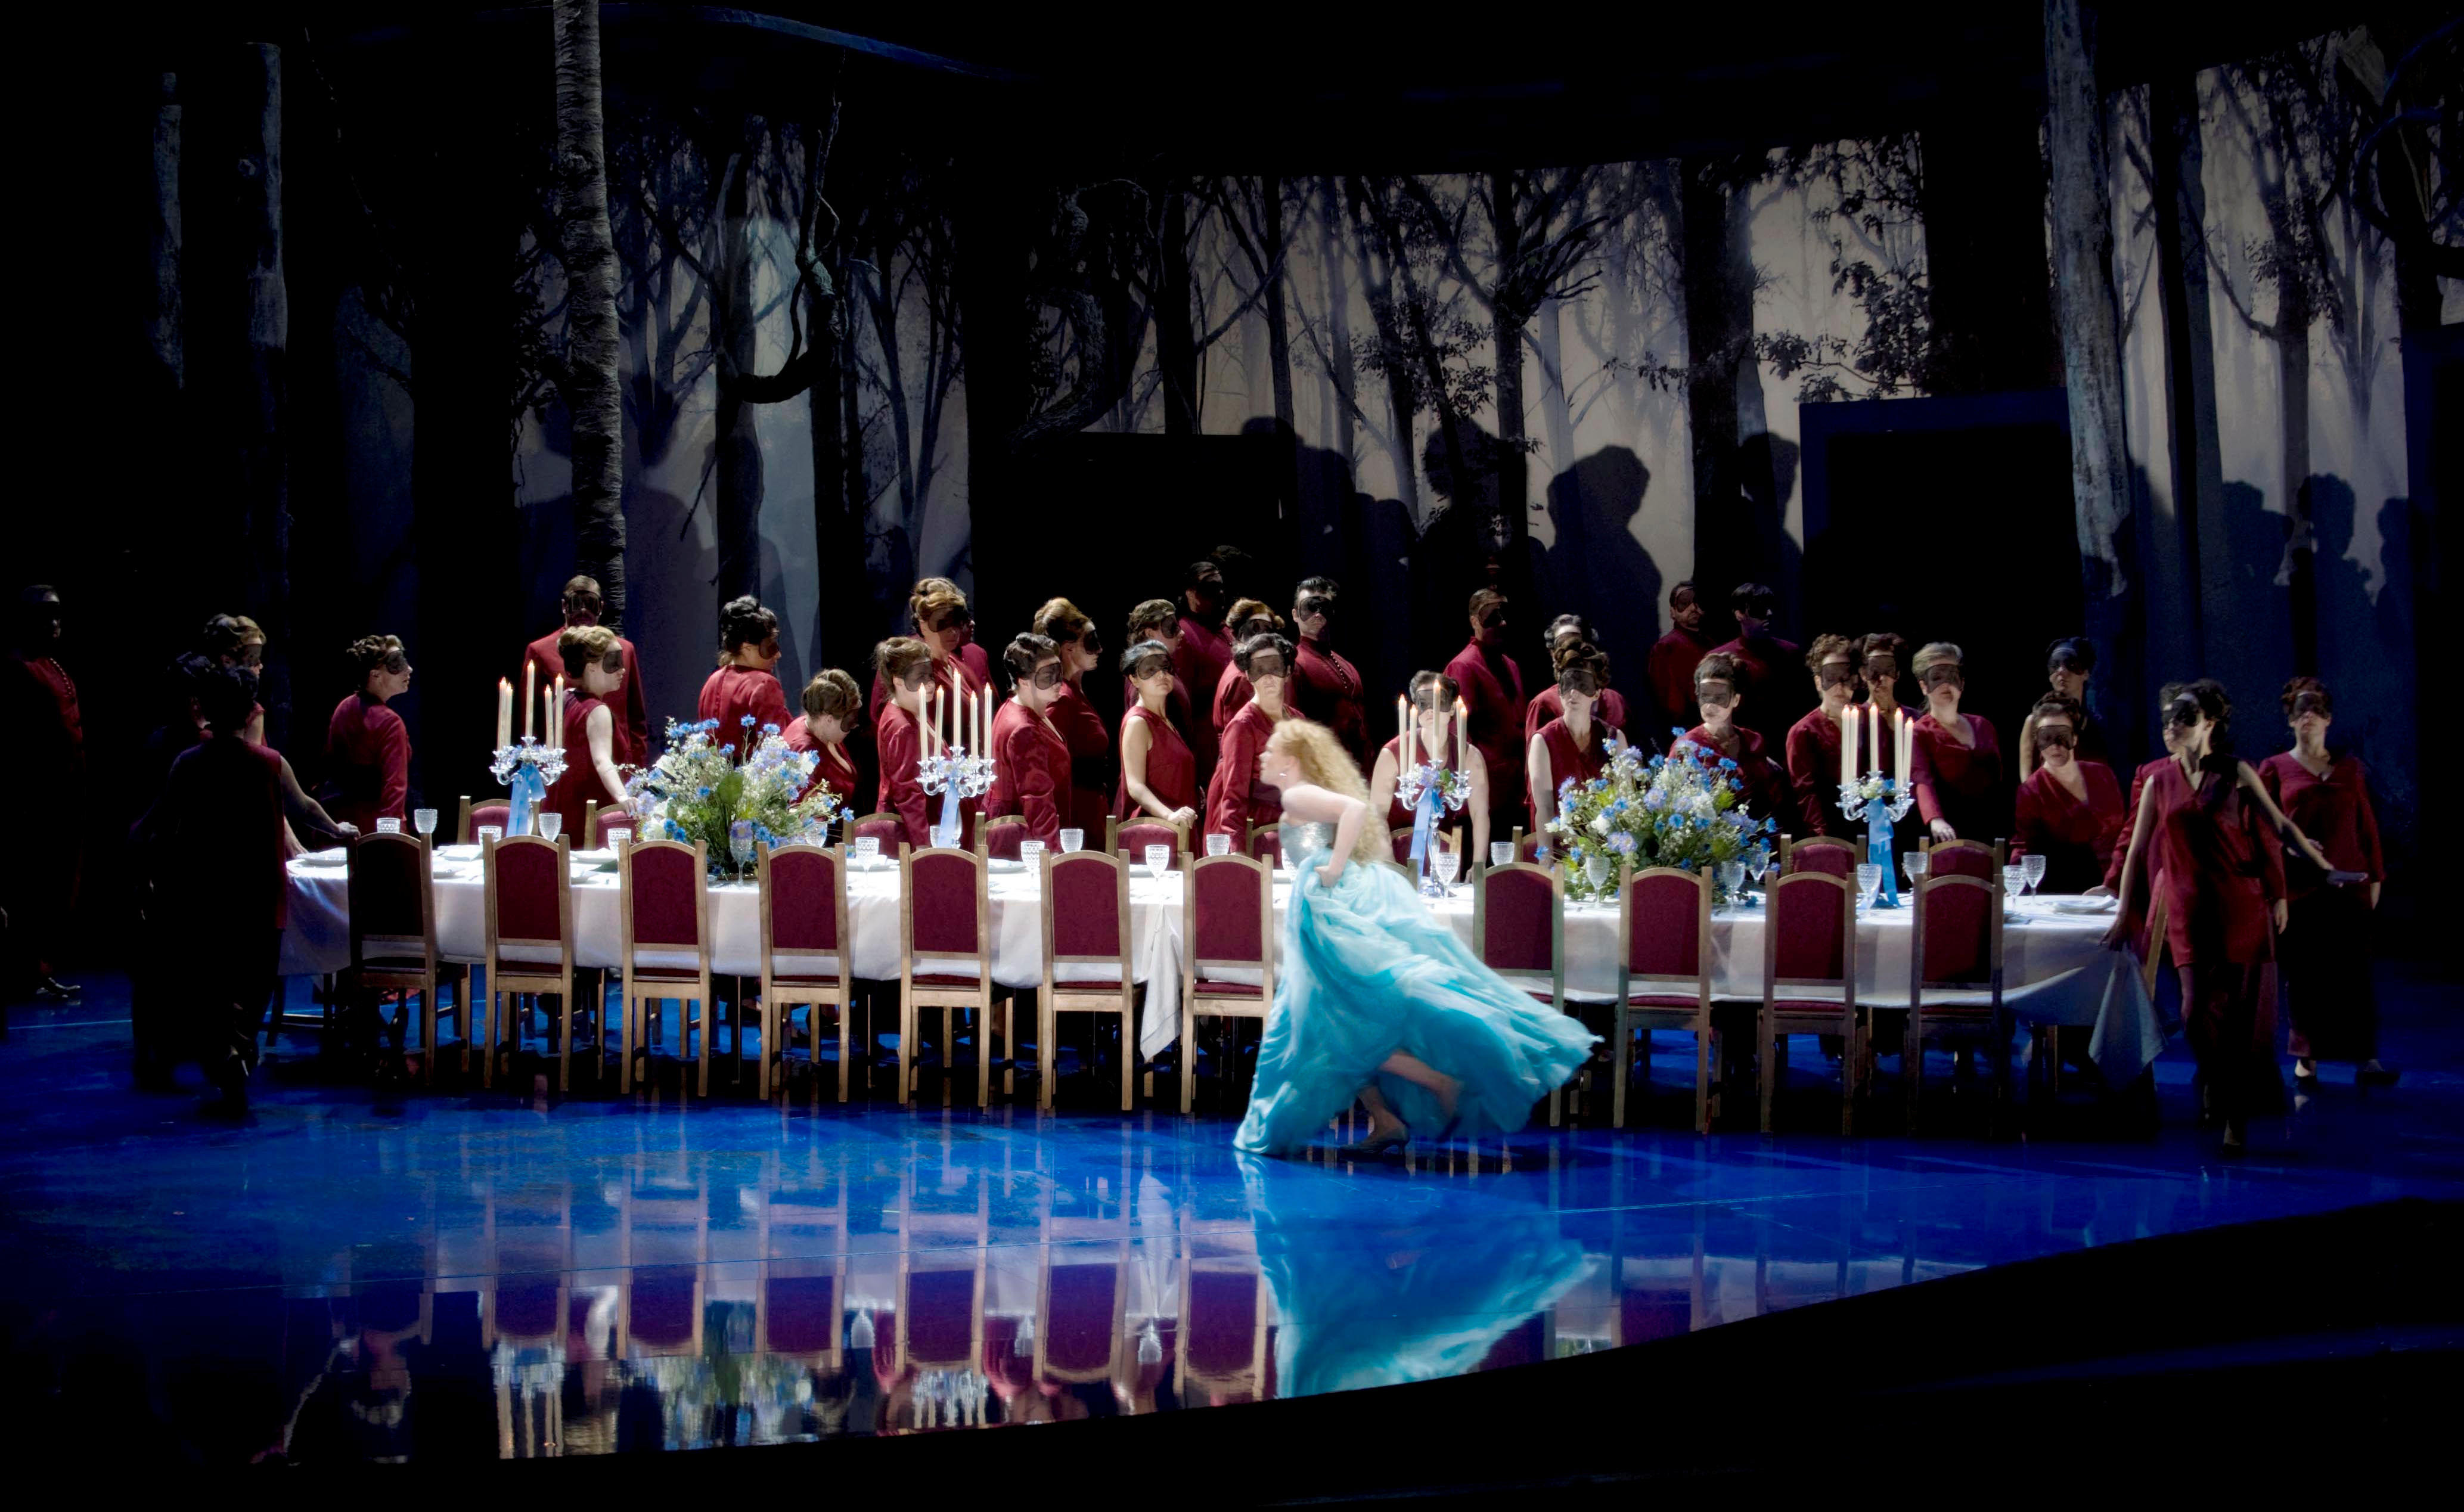 Stage presence: 'Rusalka,' by composer Antonin Dvorak, at the Norwegian National Opera & Ballet in 2009. | ERIK BERG / THE NORWEGIAN NATIONAL OPERA & BALLET